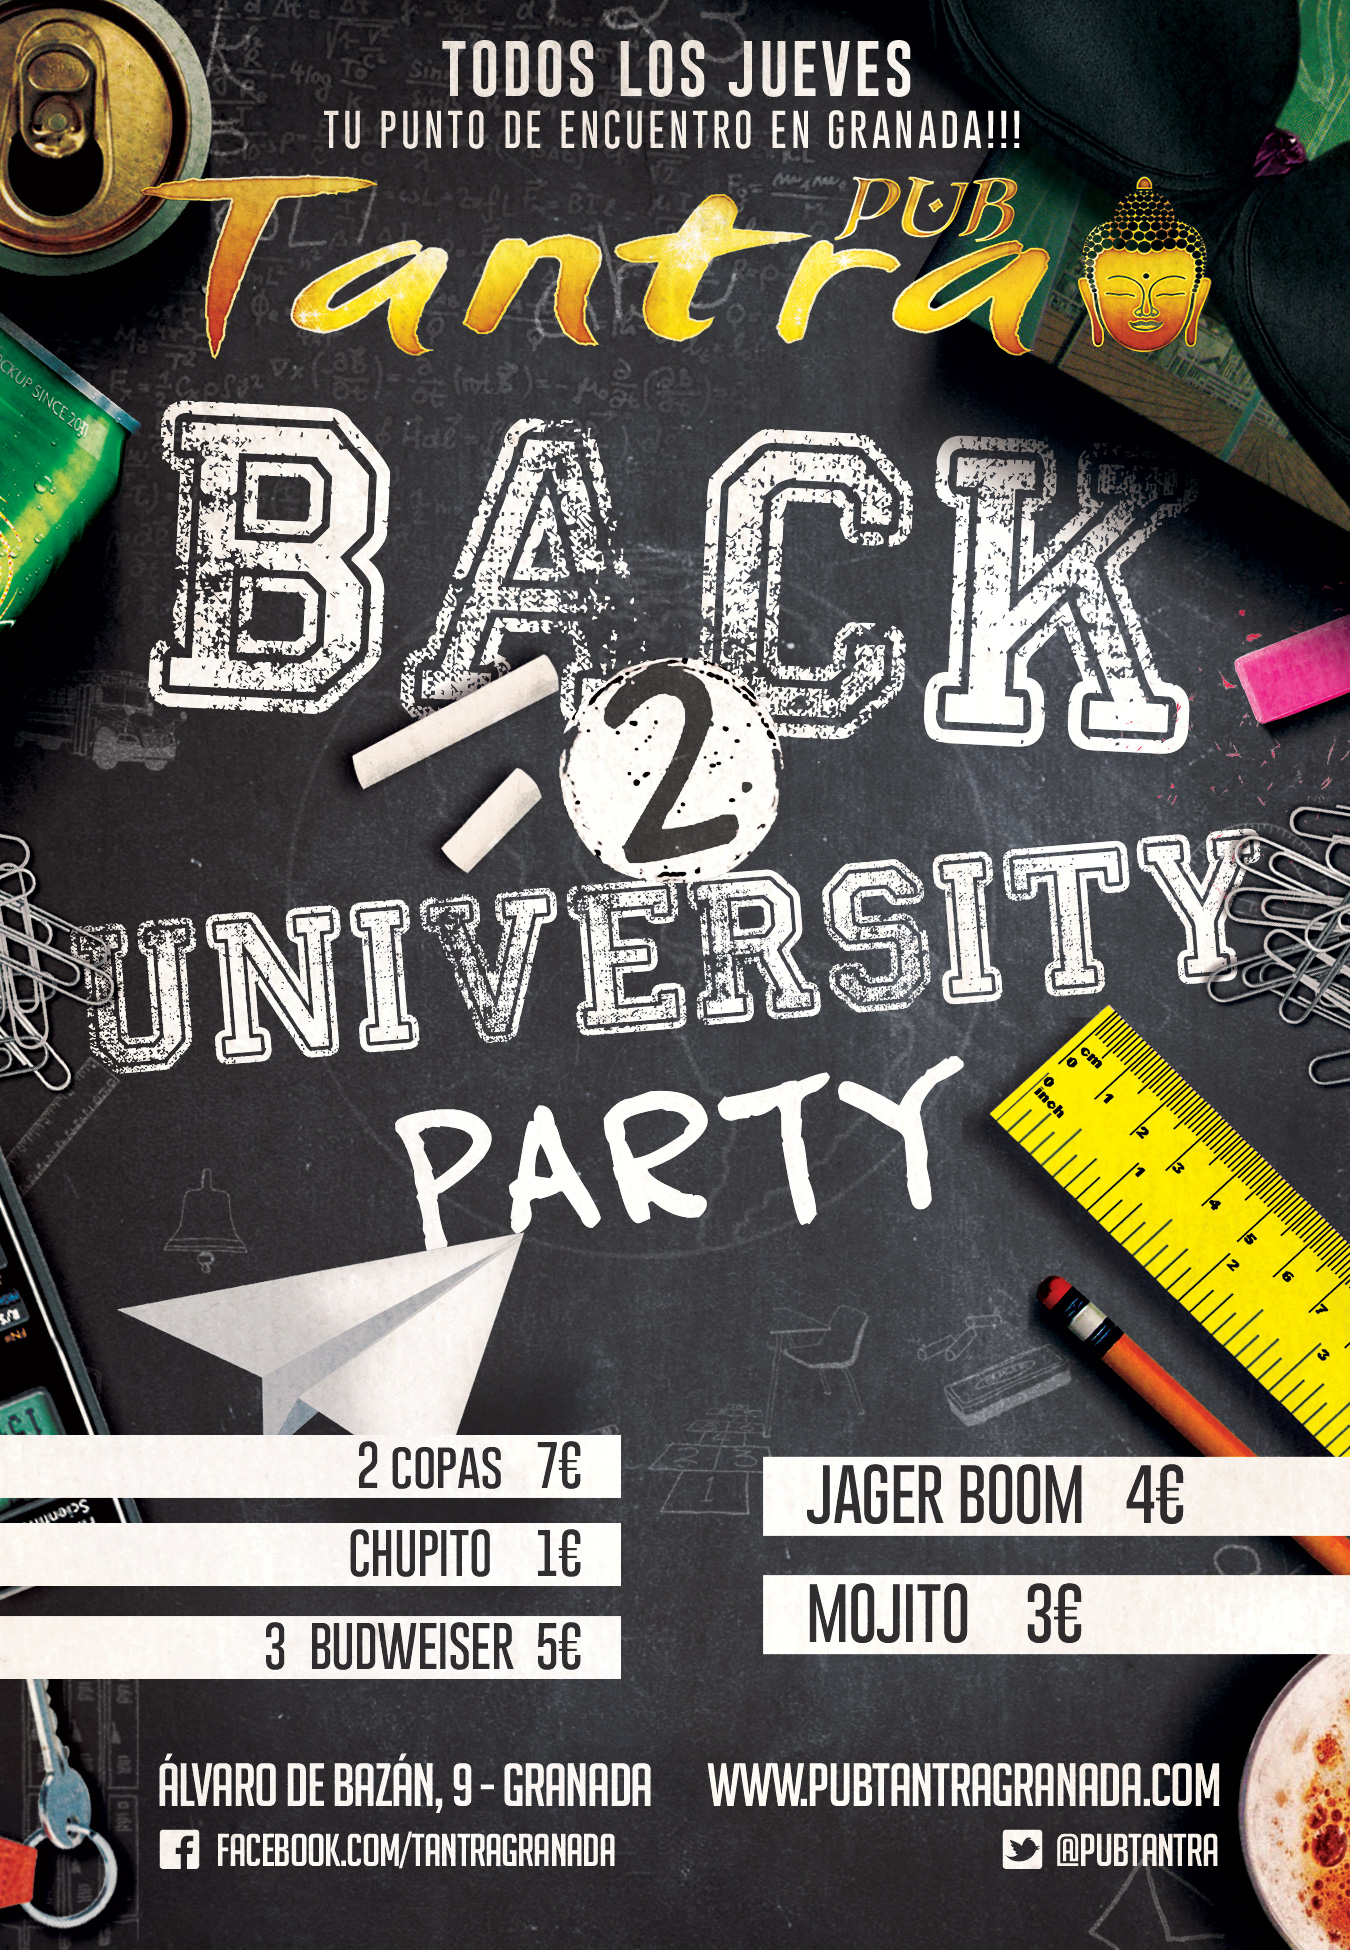 Back to University Party